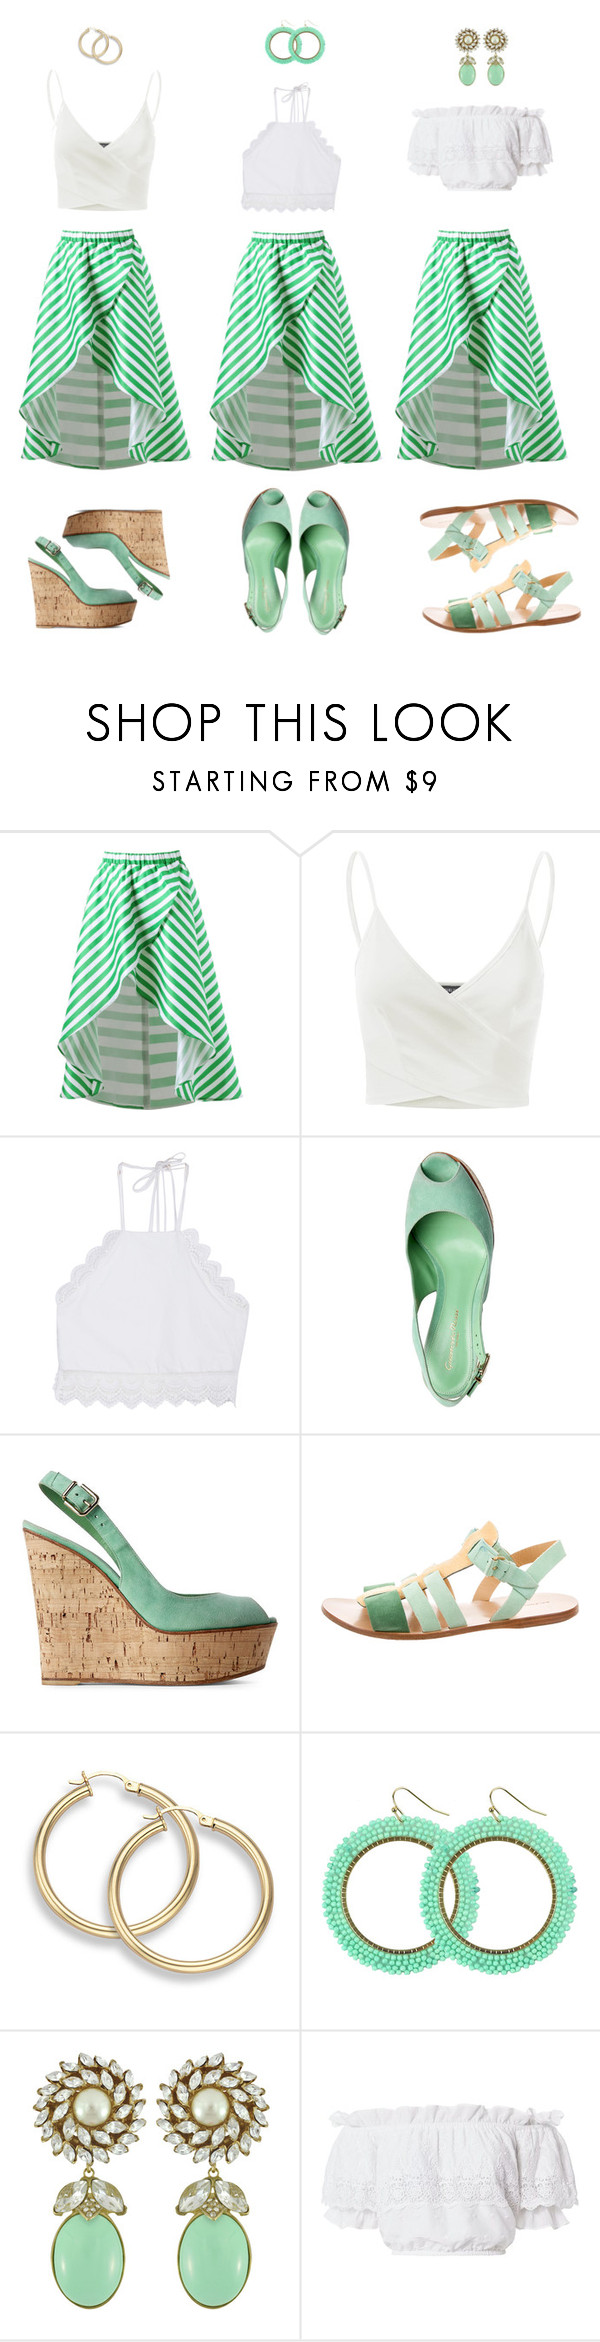 """""""1 item - 3 looks"""" by tlb0318 ❤ liked on Polyvore featuring Doublju, Front Row Shop, Balenciaga, Ciner and LoveShackFancy"""